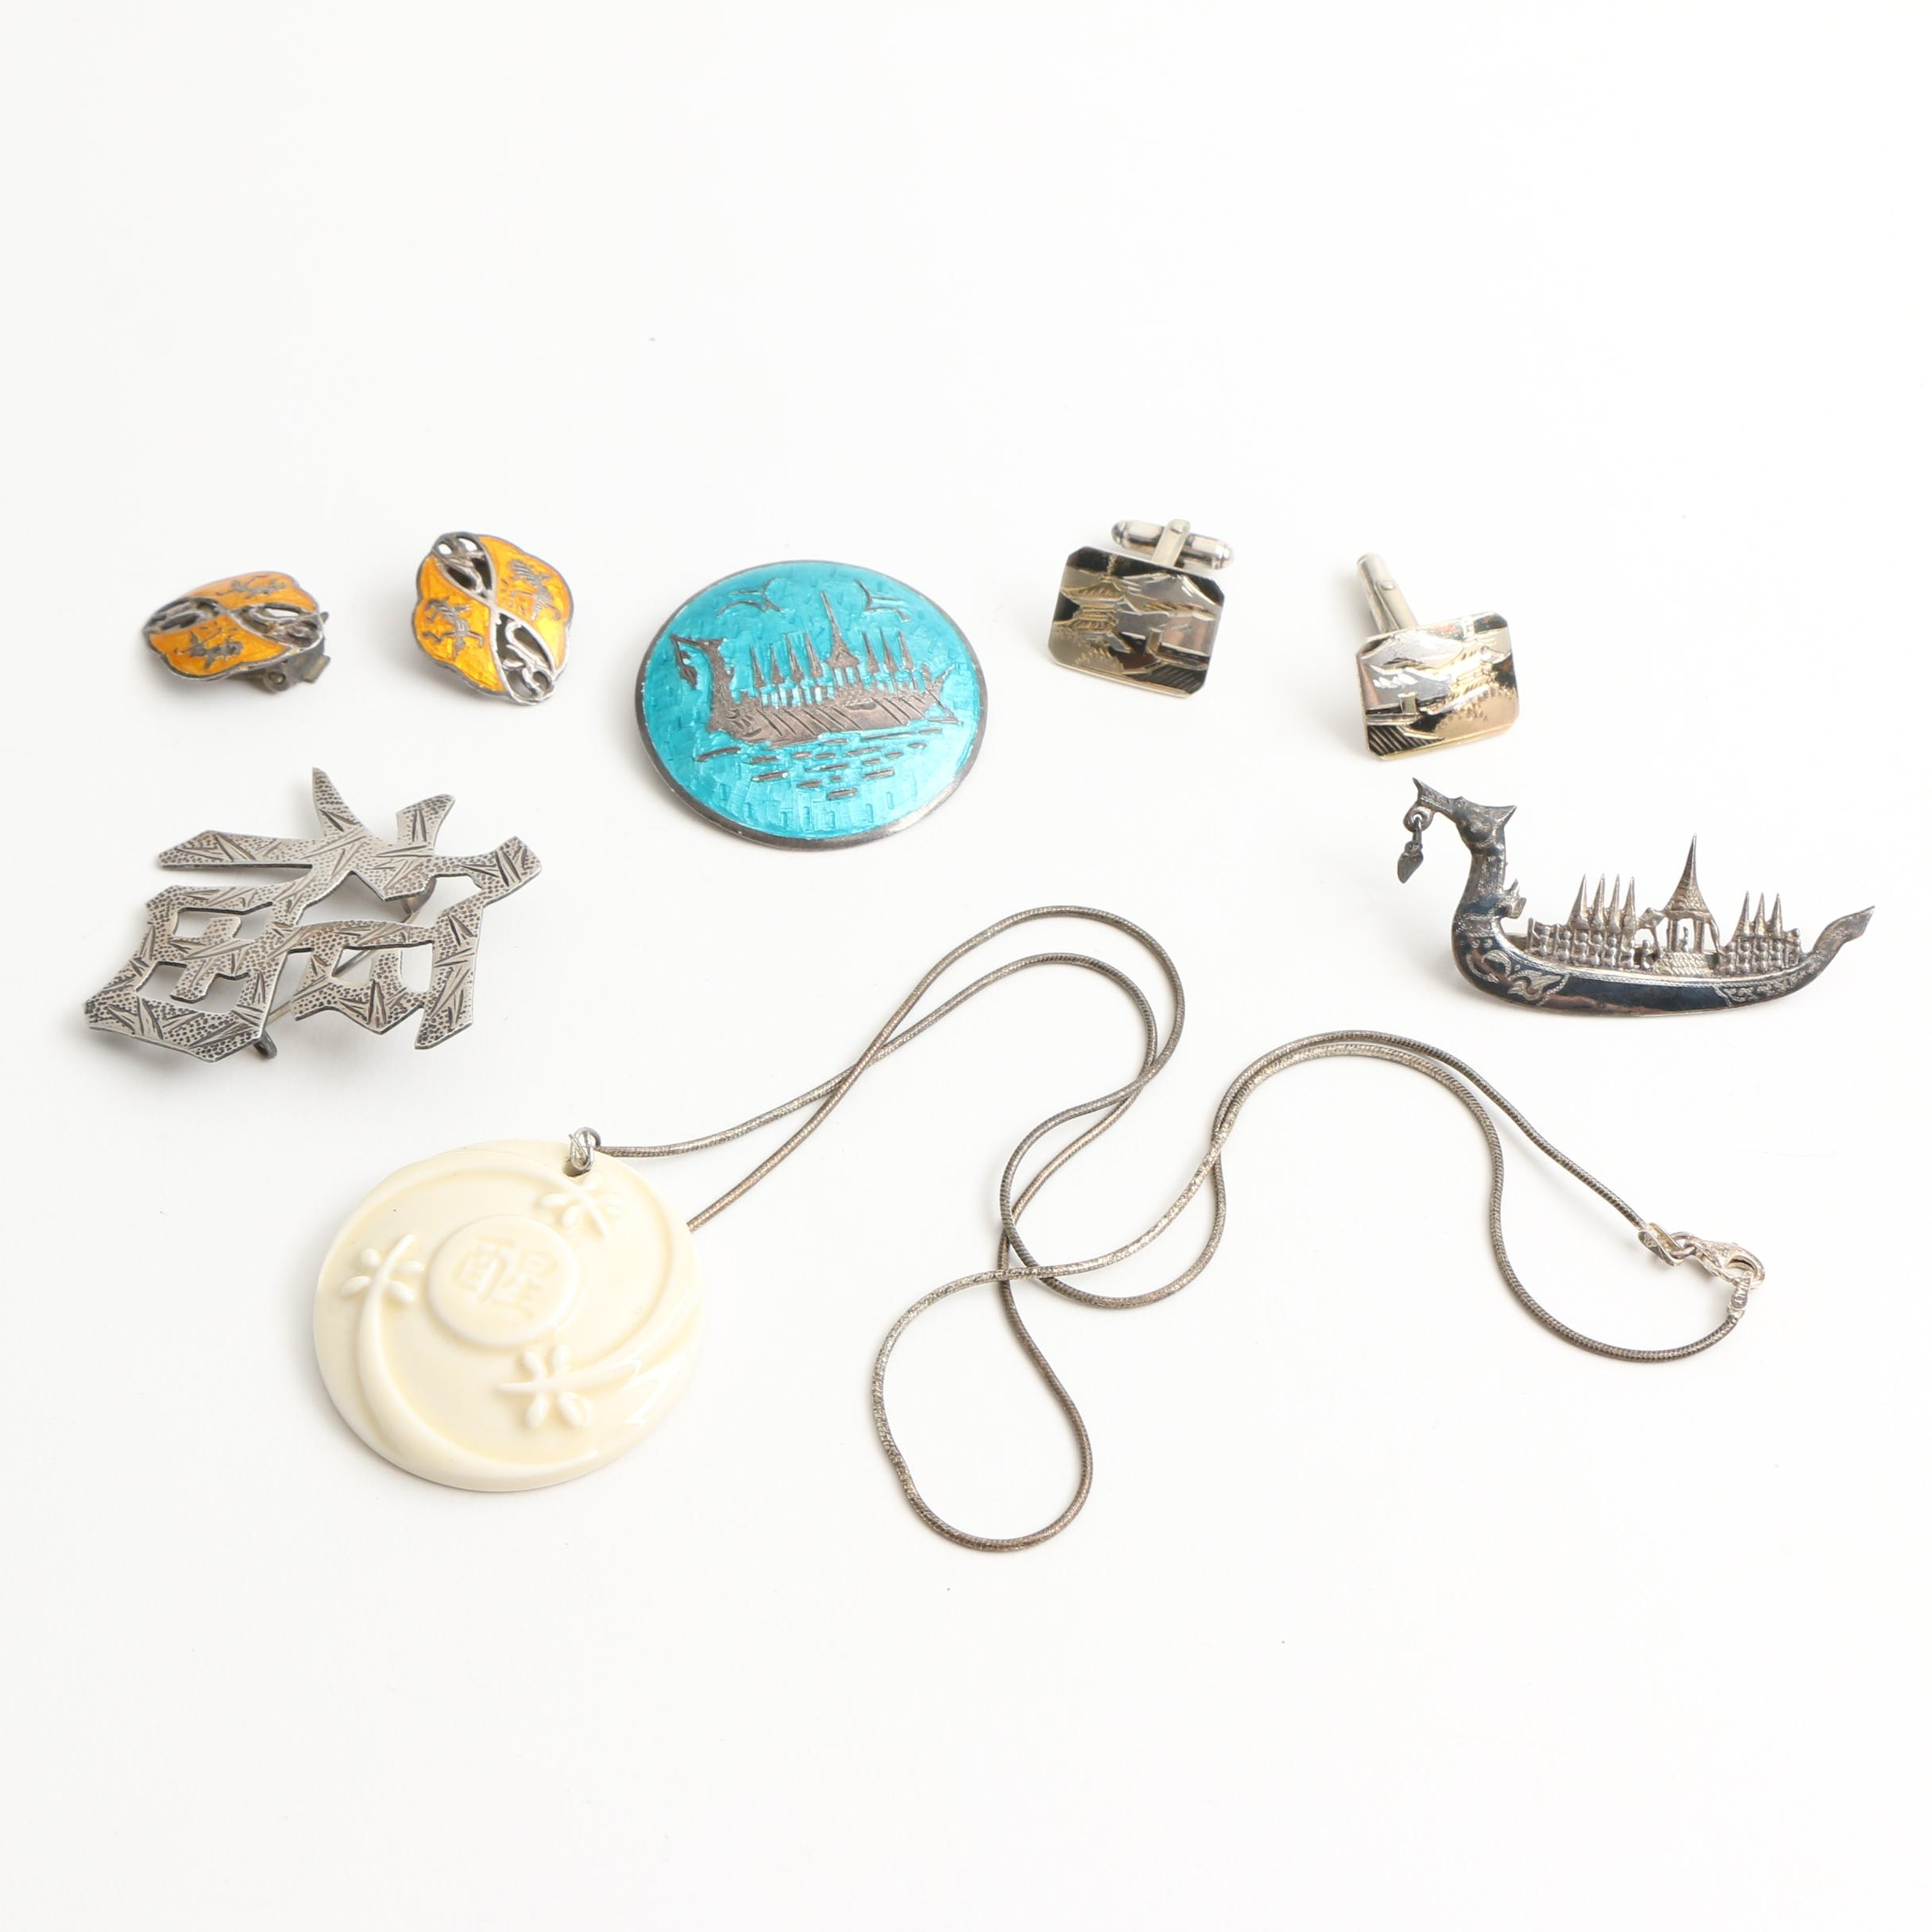 Selection of Asian Inspired Sterling Silver Jewelry Featuring Siam